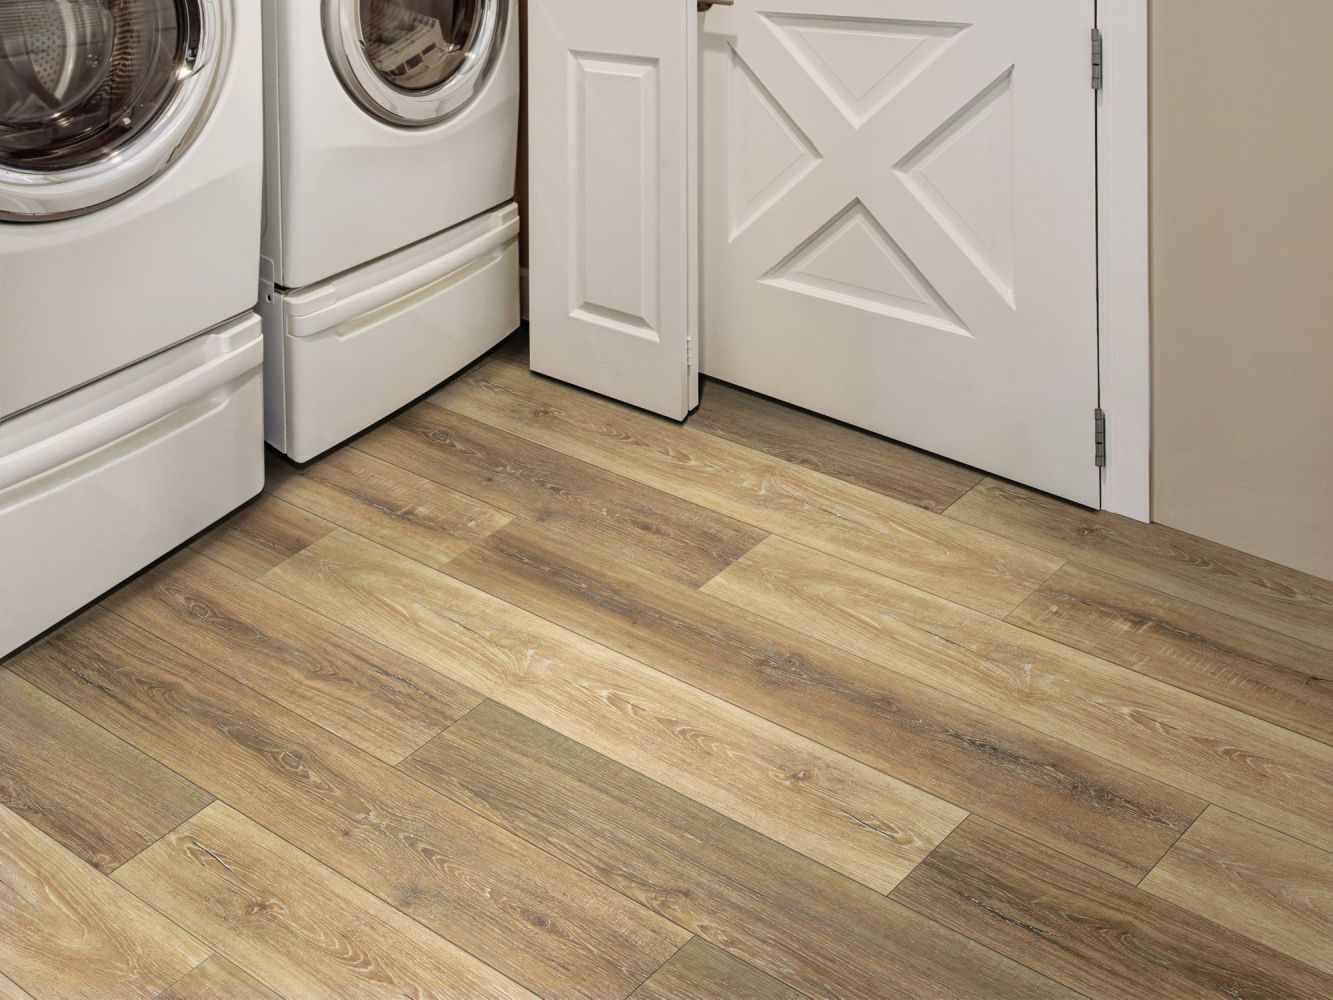 Shaw Floors Resilient Property Solutions Bonafide Hd+accent Bamboo 07084_VE427